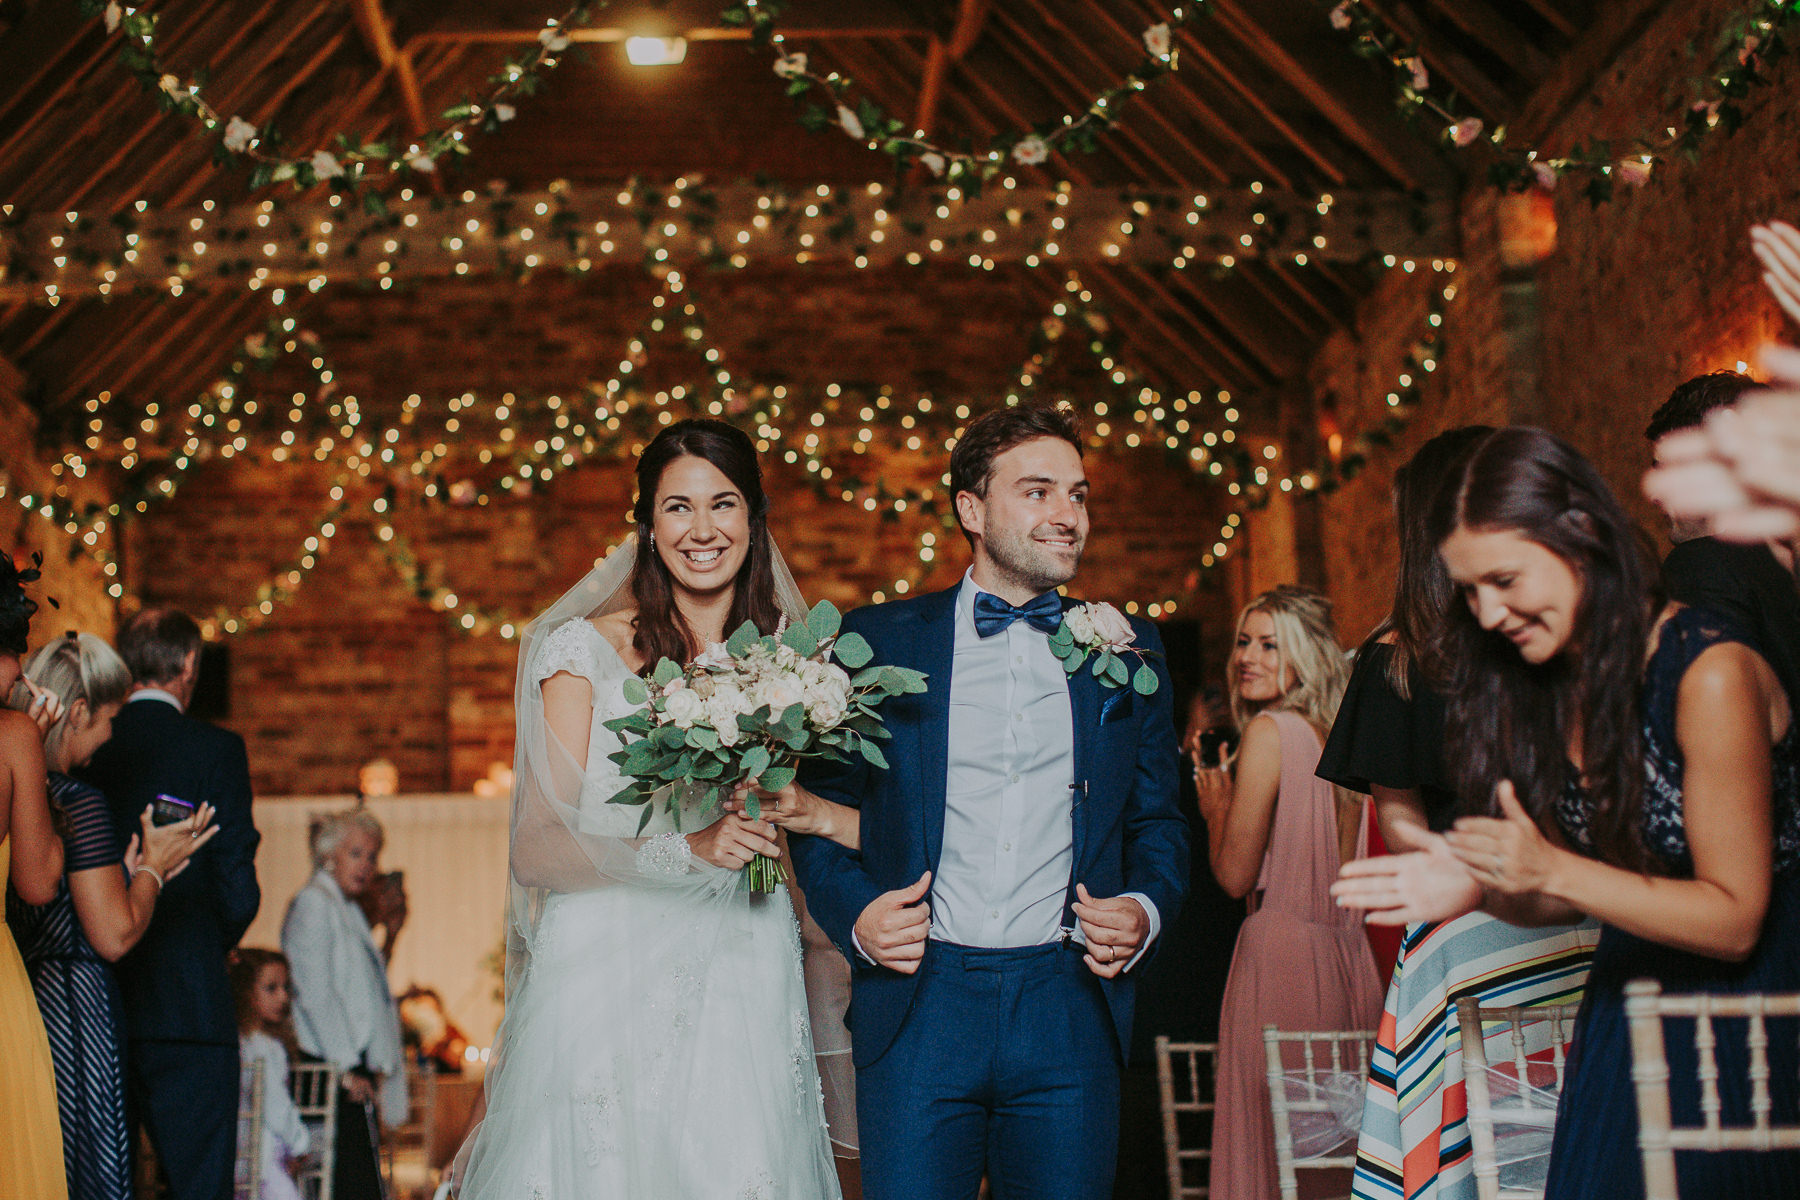 Barmbyfield Barns Wedding